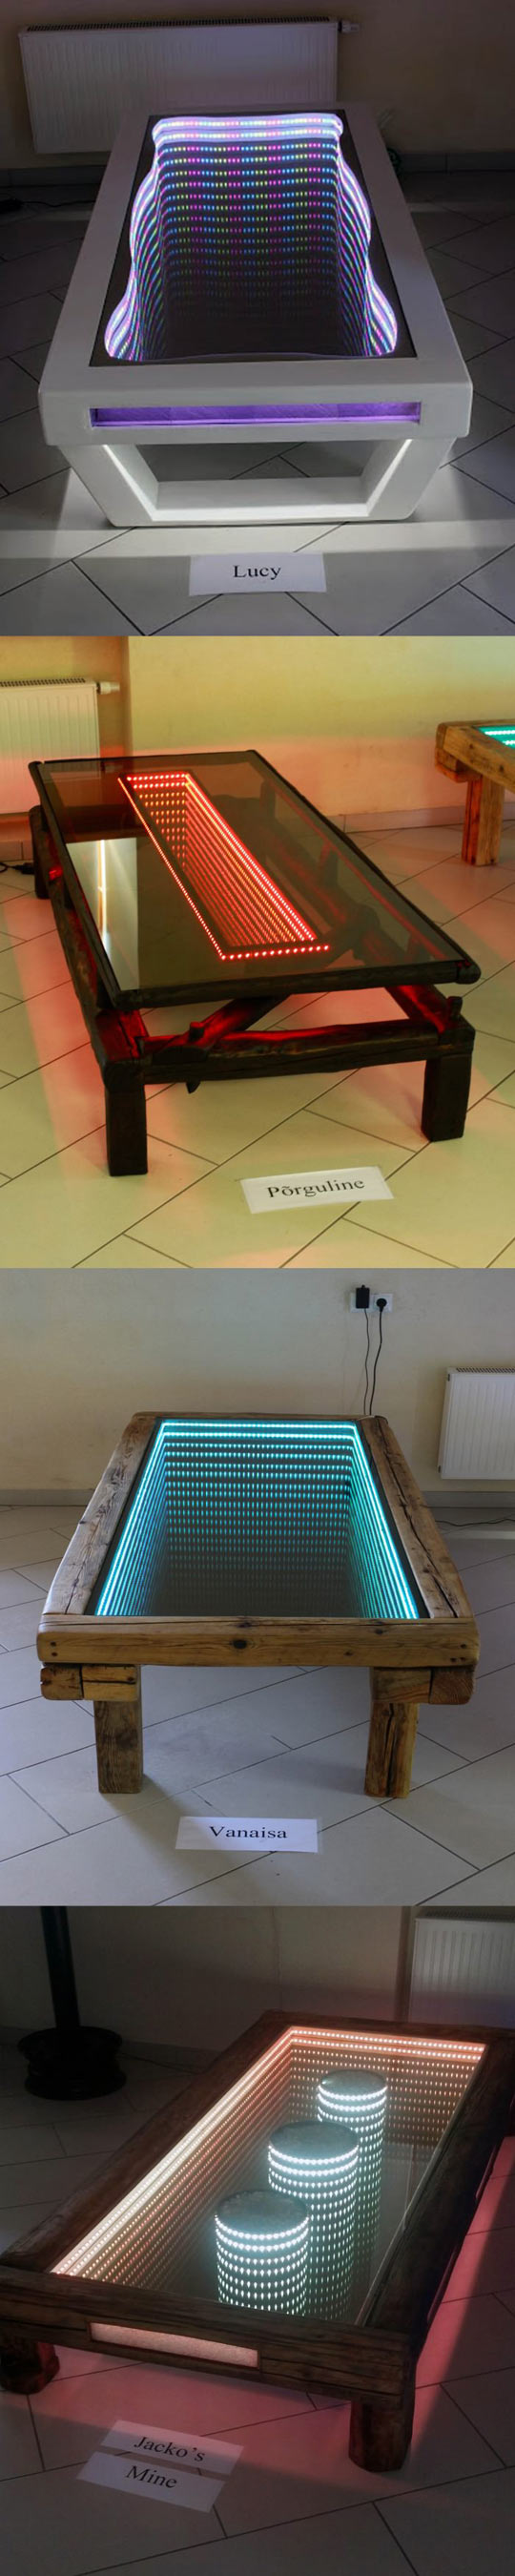 funny-table-light-infinity-holes